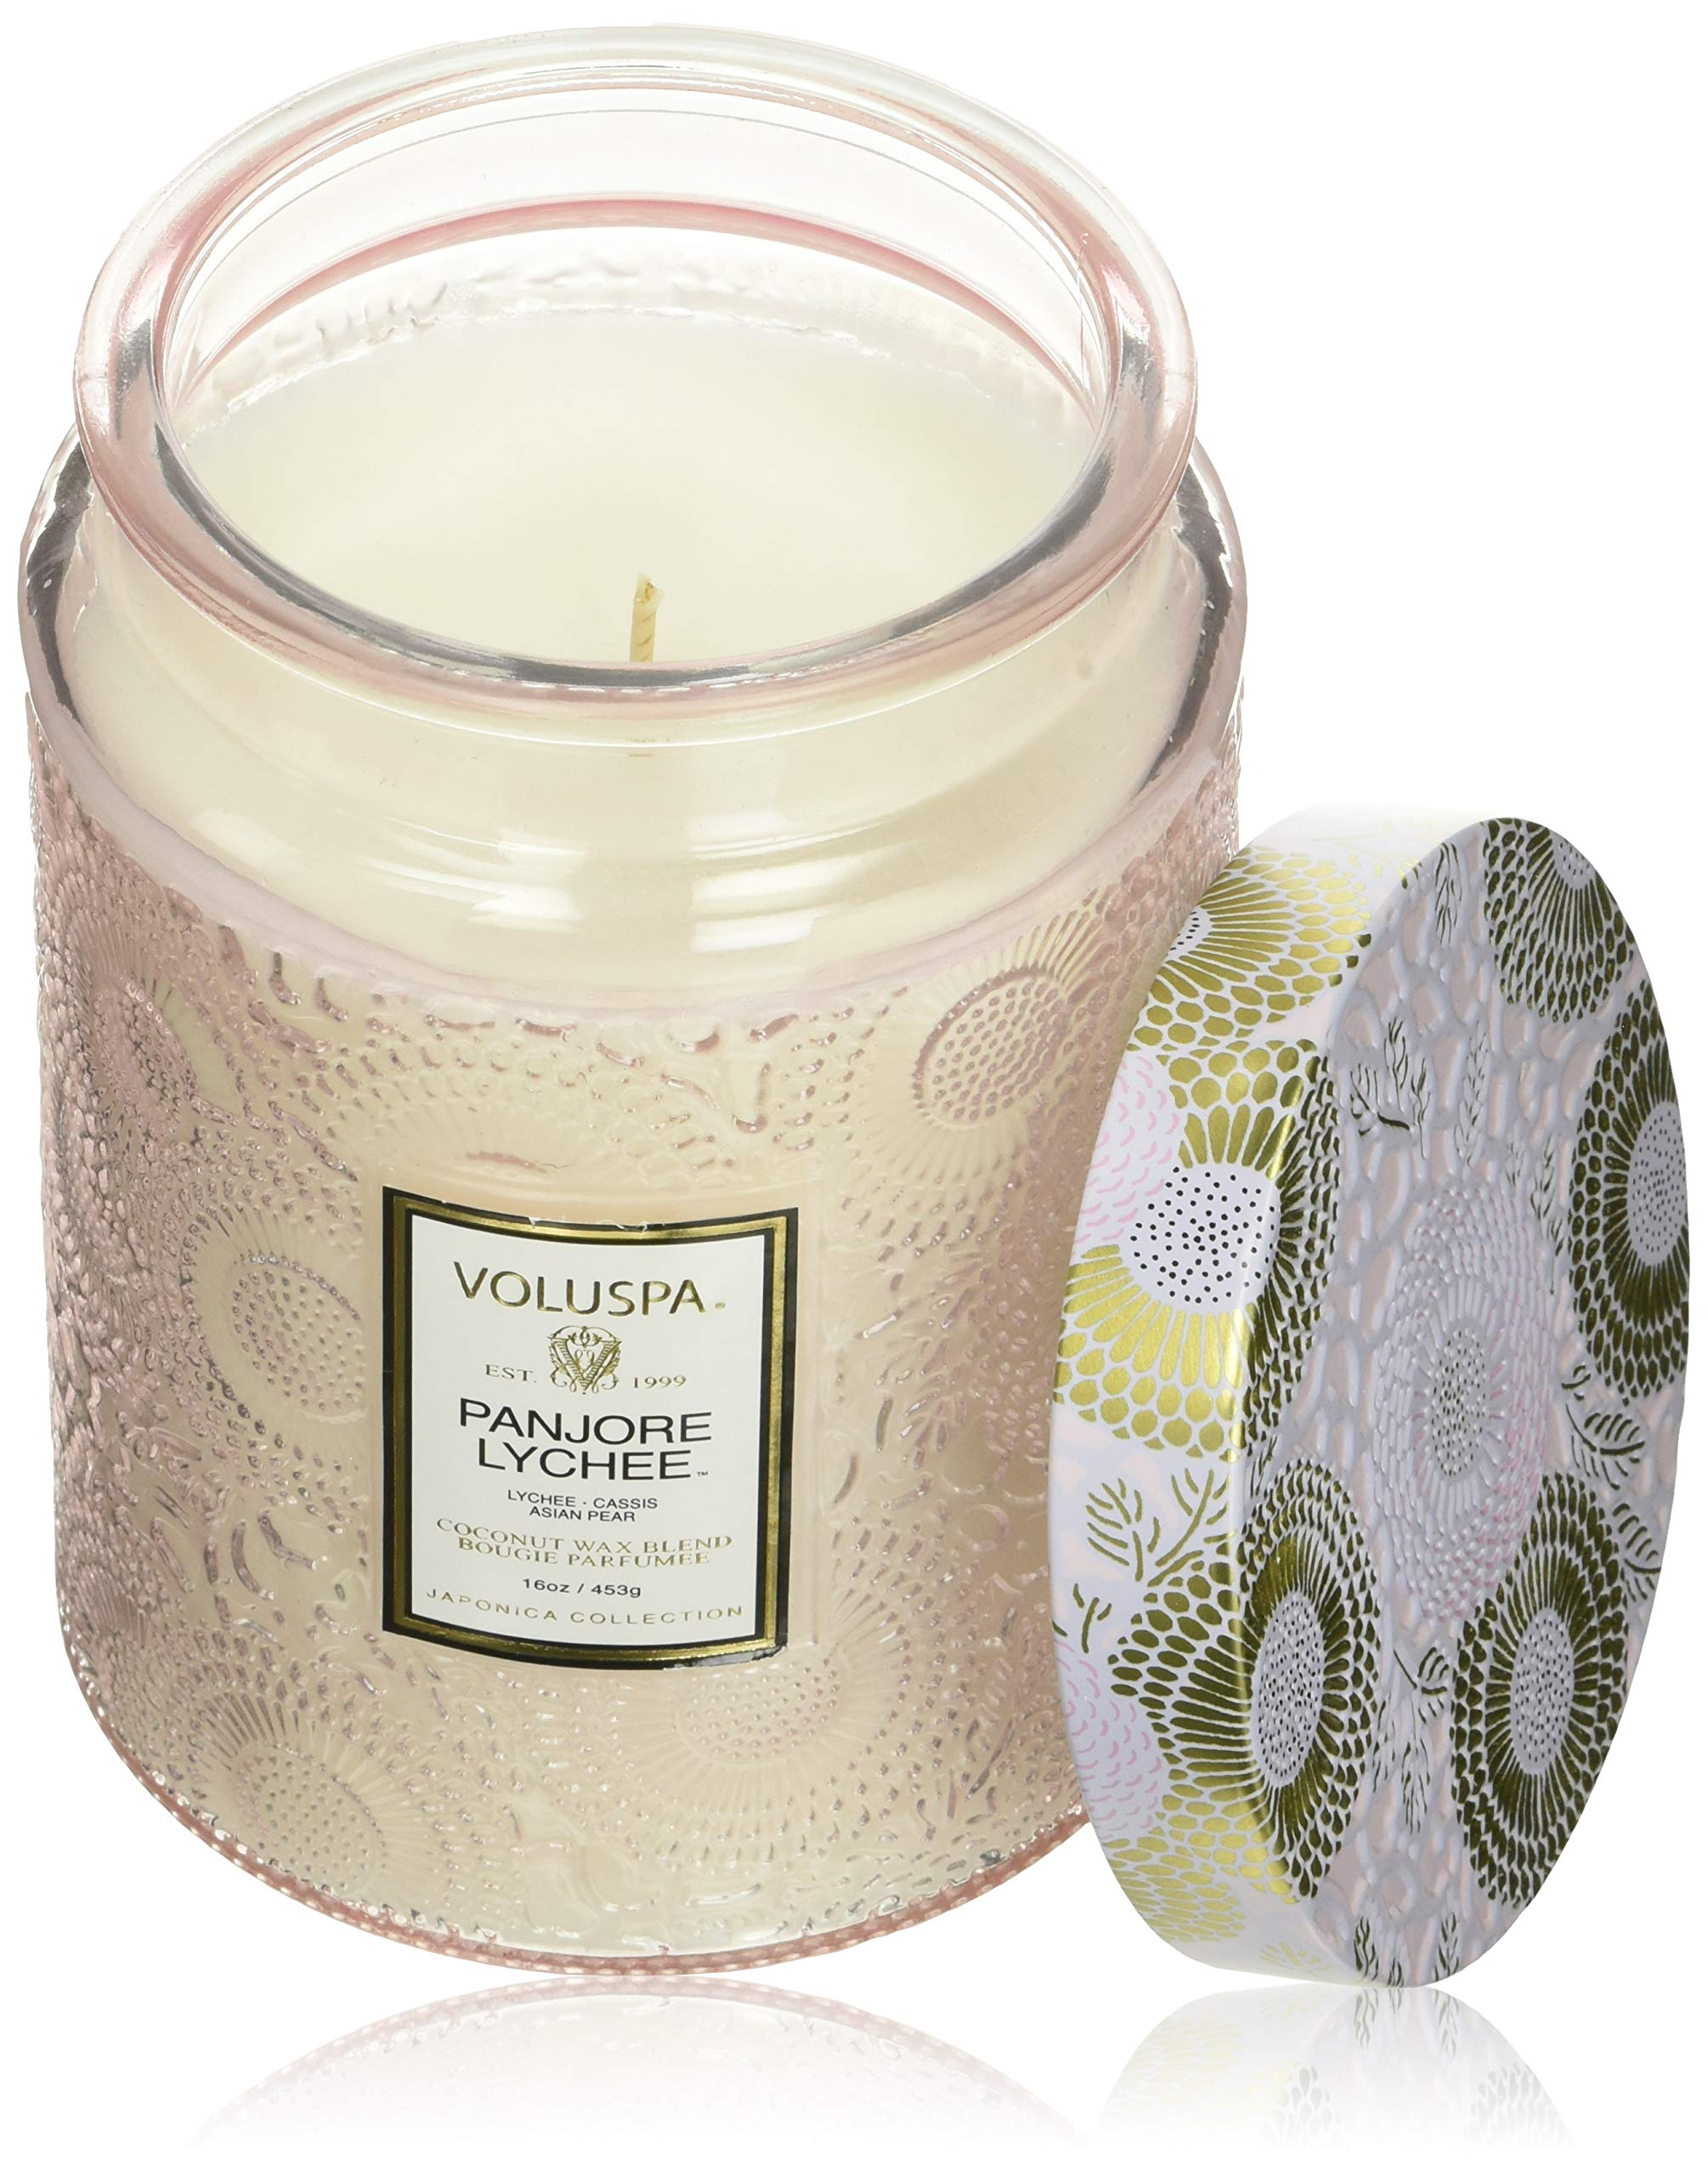 Voluspa Panjore Lychee Large Embossed Glass Jar Candle, 16 Ounces by Voluspa